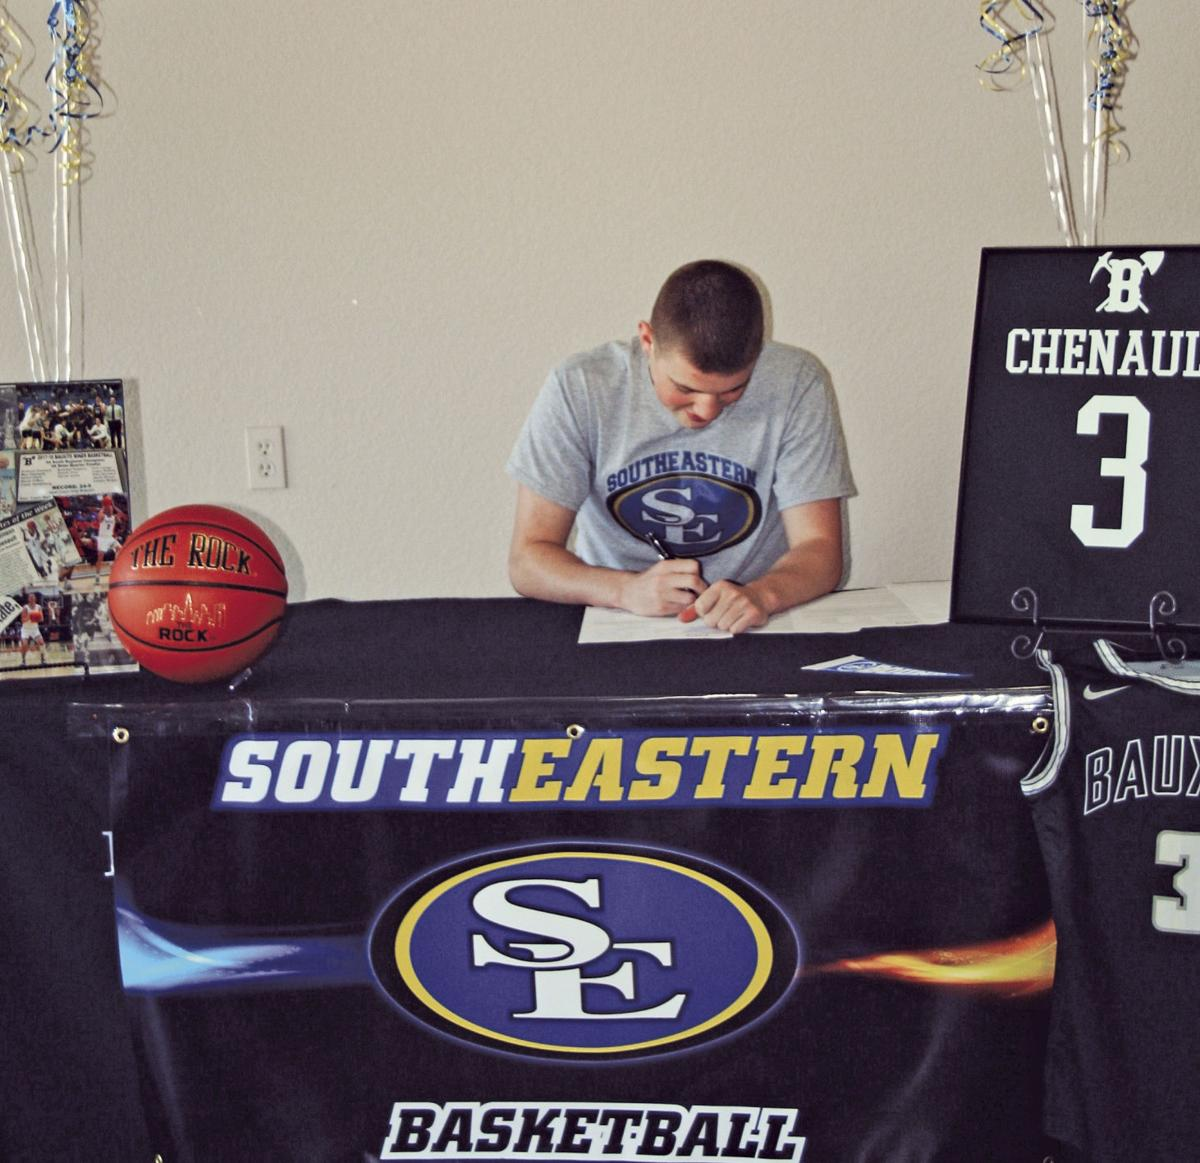 MAX CHENAULT SIGNING